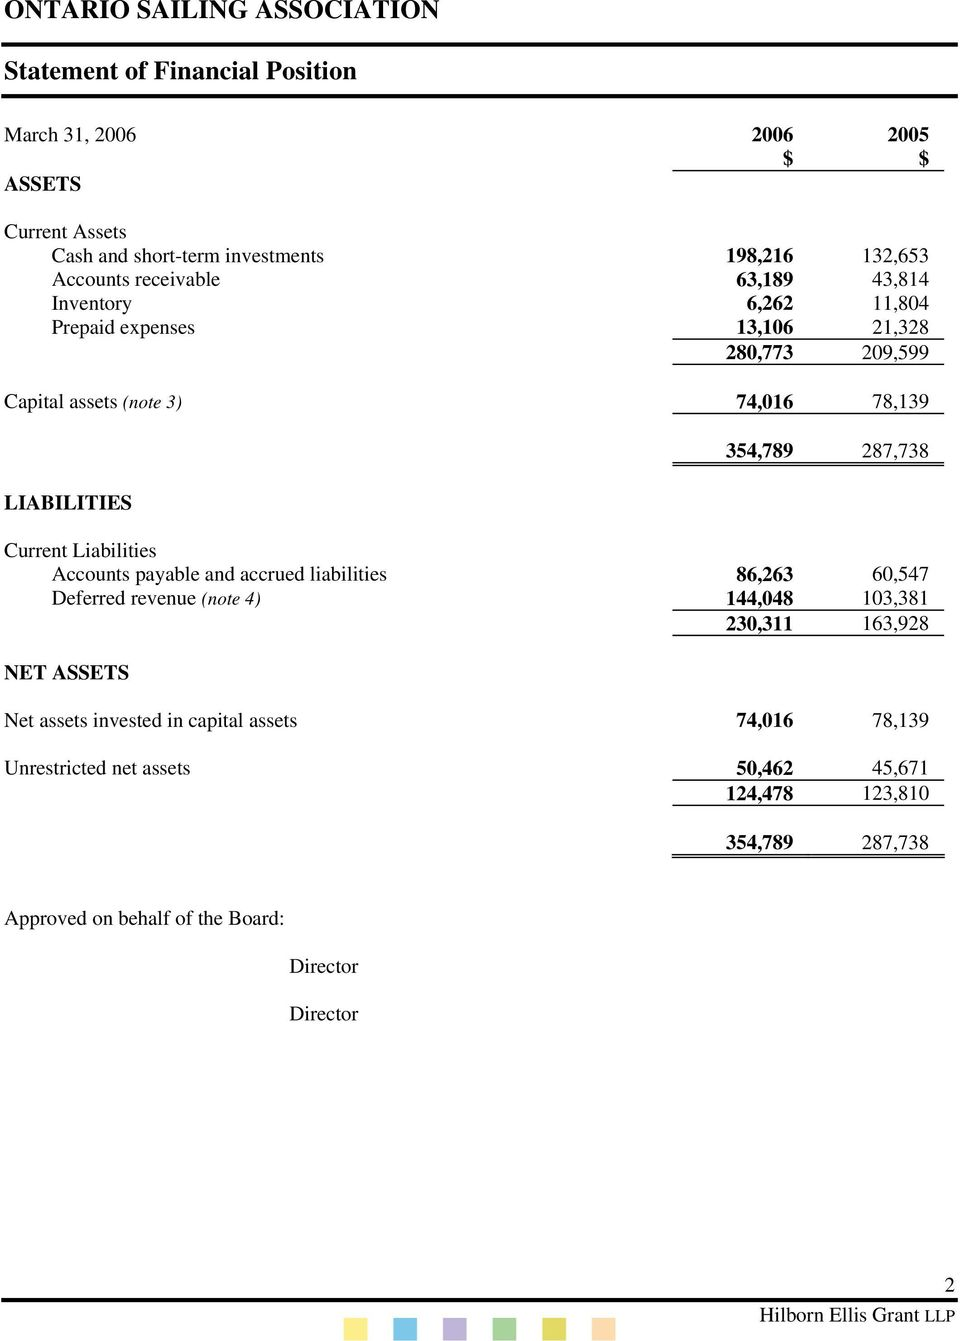 Liabilities Accounts payable and accrued liabilities 86,263 60,547 Deferred revenue (note 4) 144,048 103,381 230,311 163,928 NET ASSETS Net assets